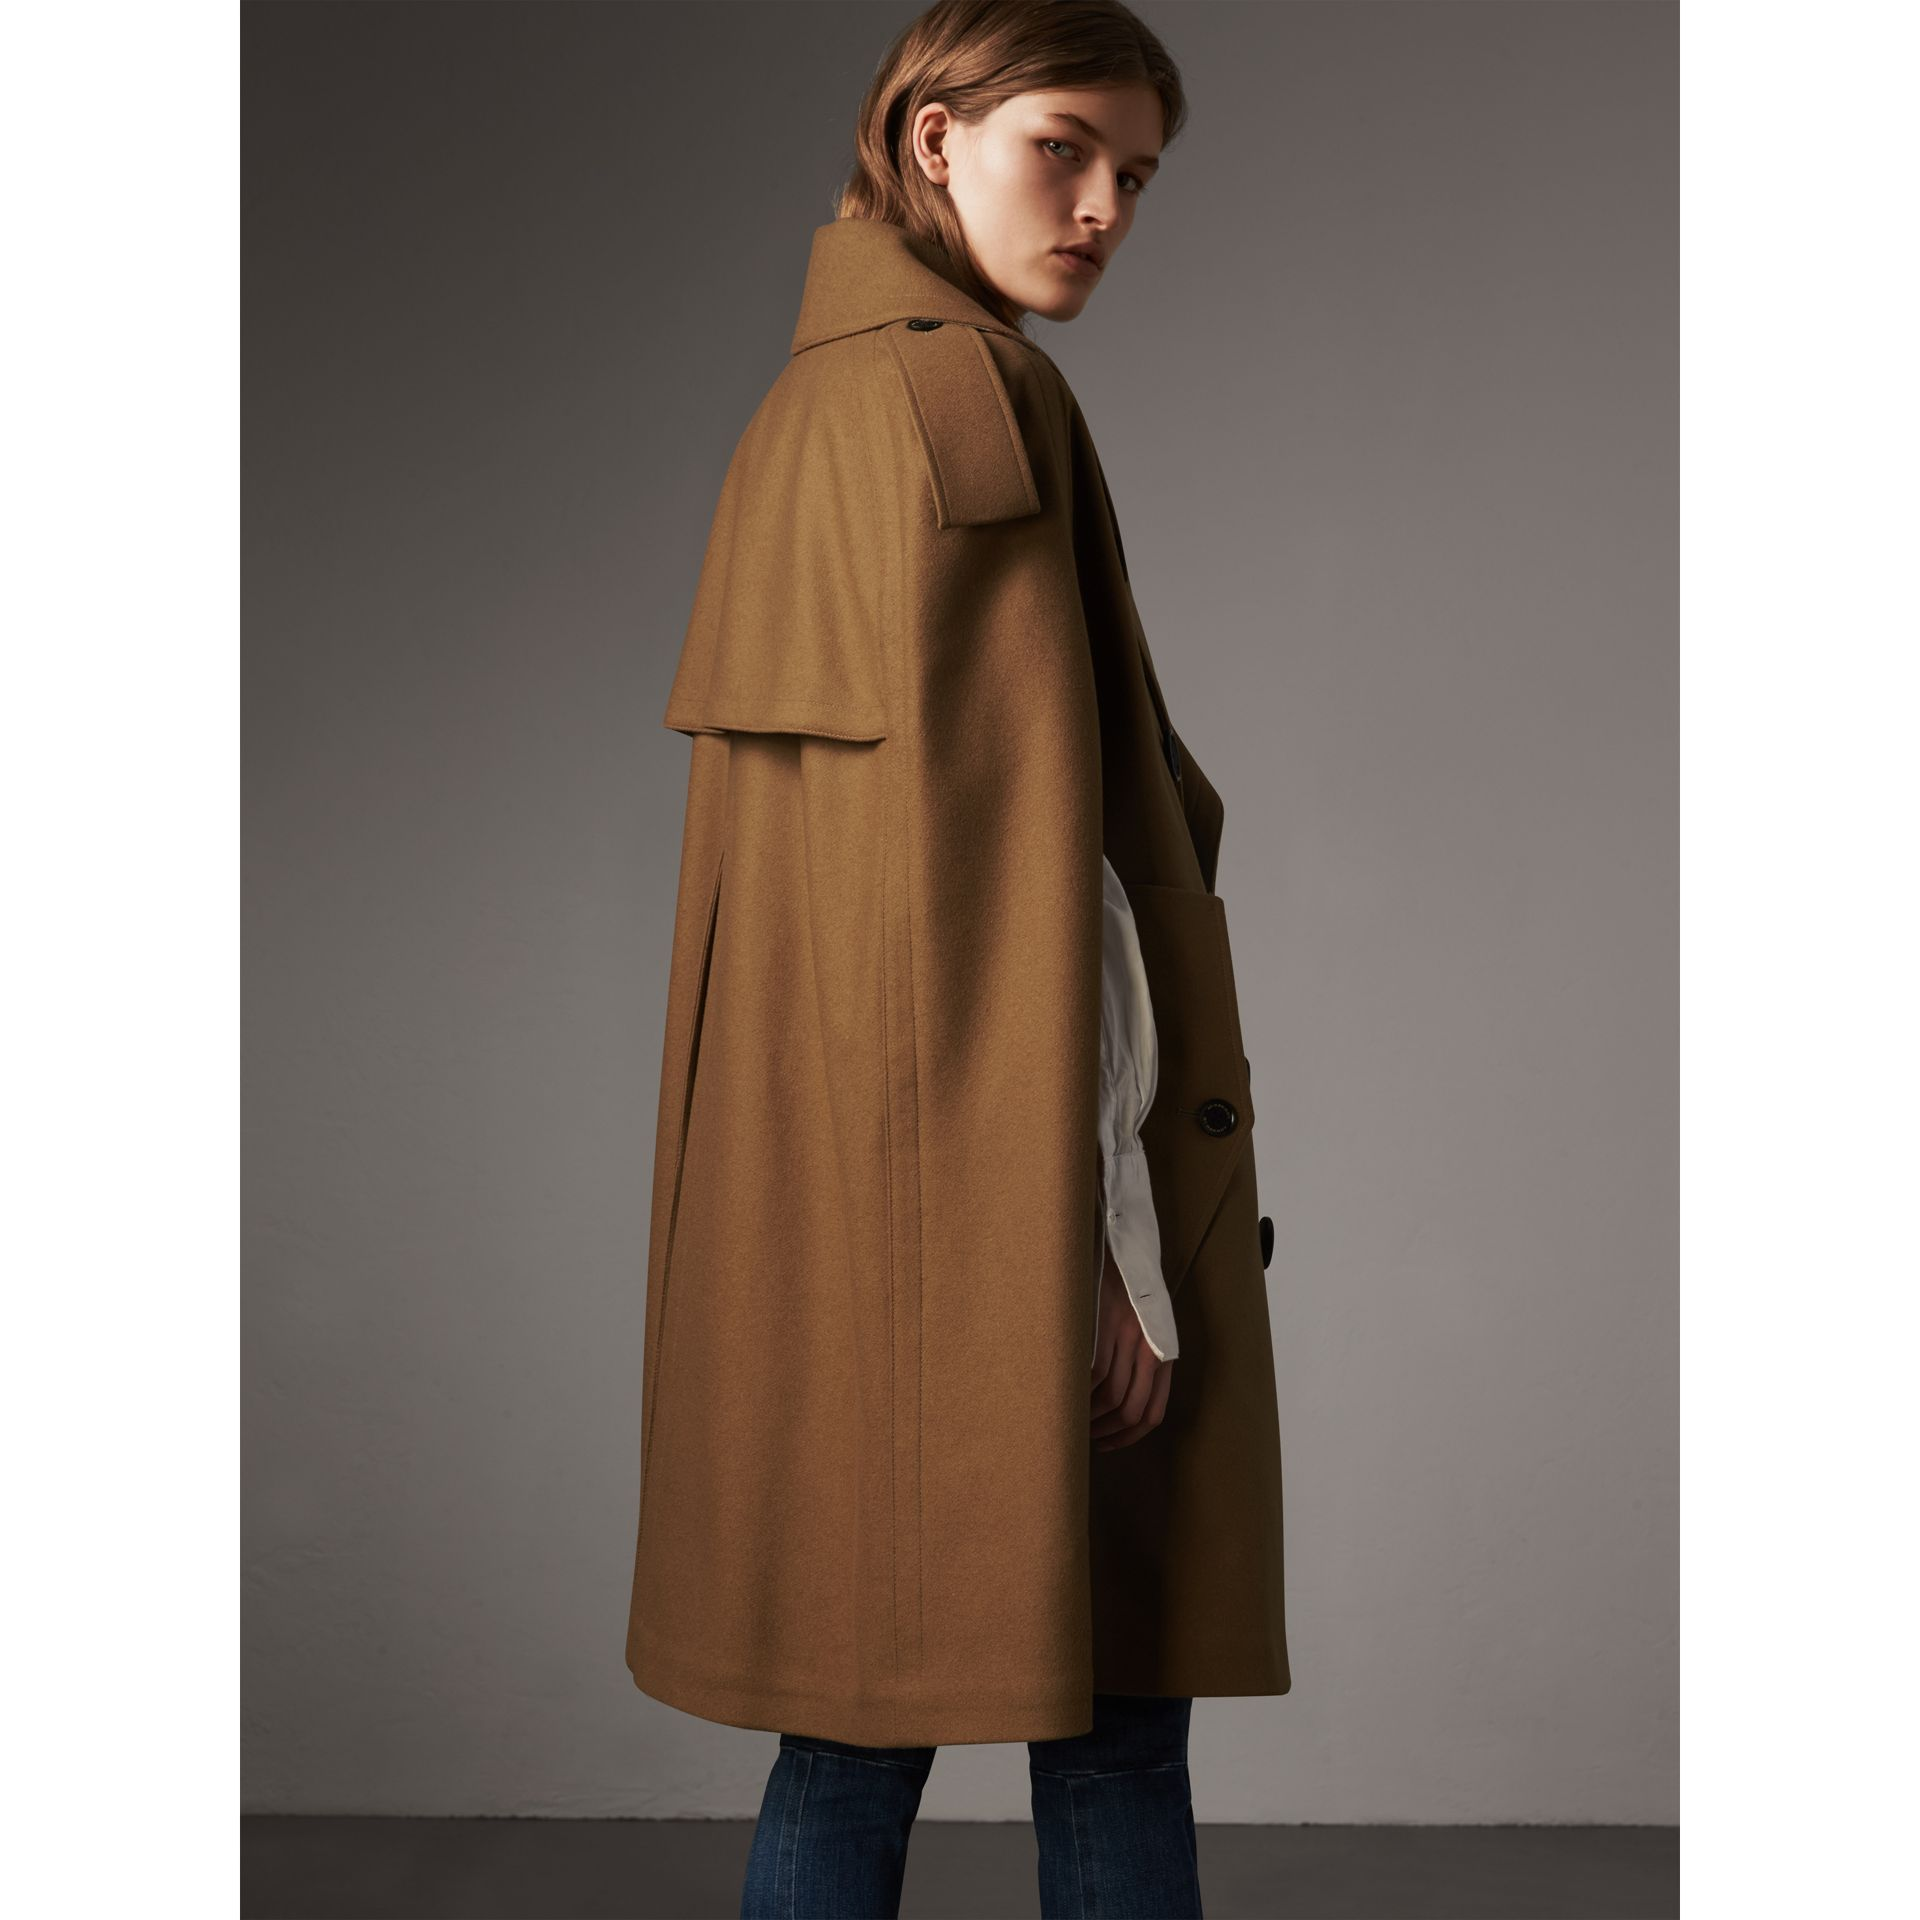 Wool Double-breasted Military Cape in Camel - Women | Burberry - gallery image 3